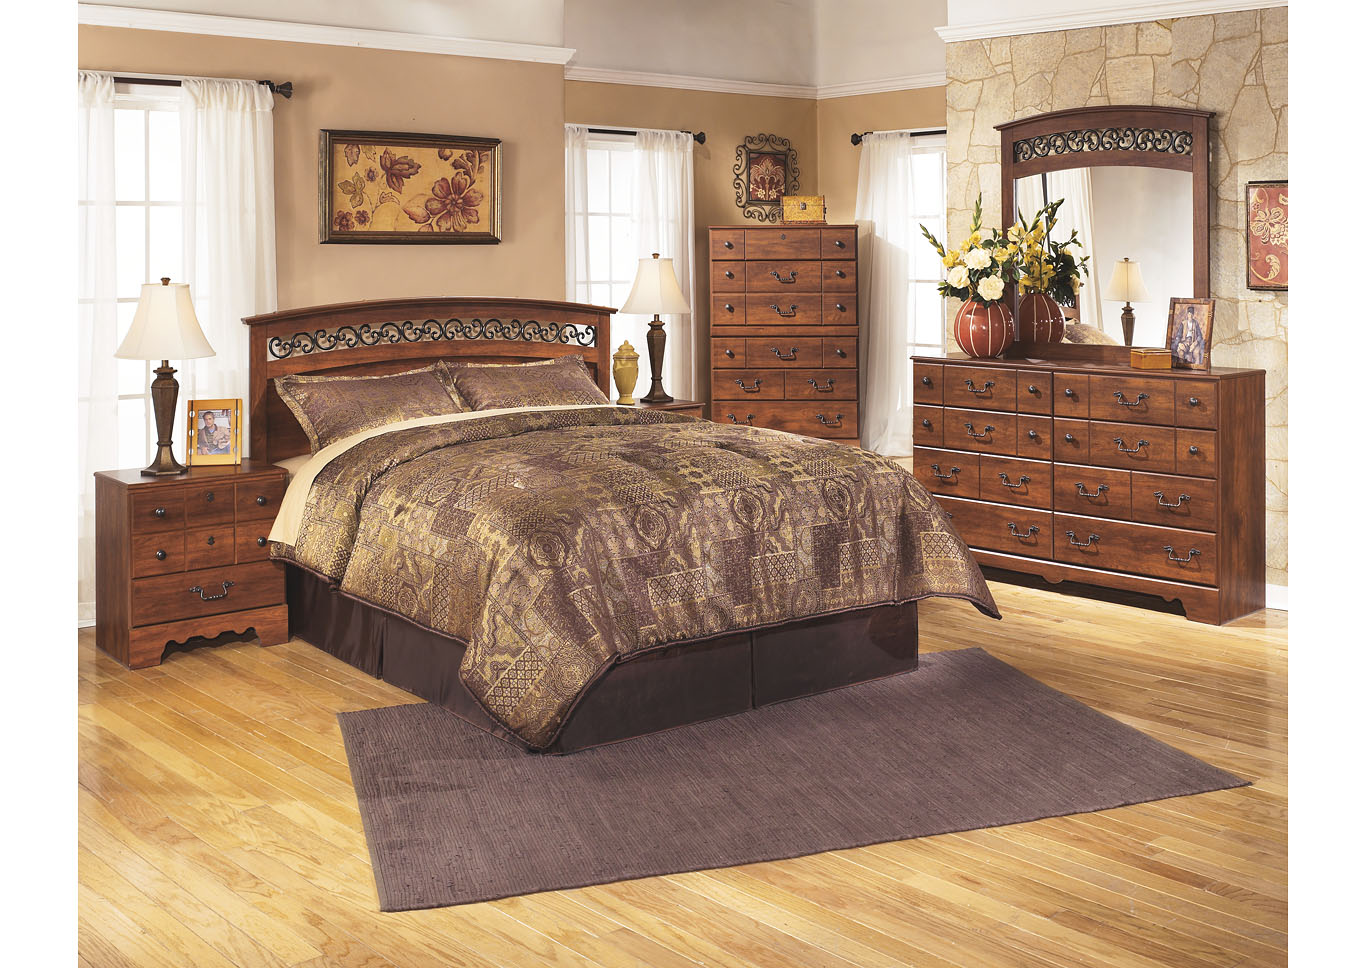 Timberline Queen/Full Panel Headboard w/Dresser & Mirror,Signature Design By Ashley